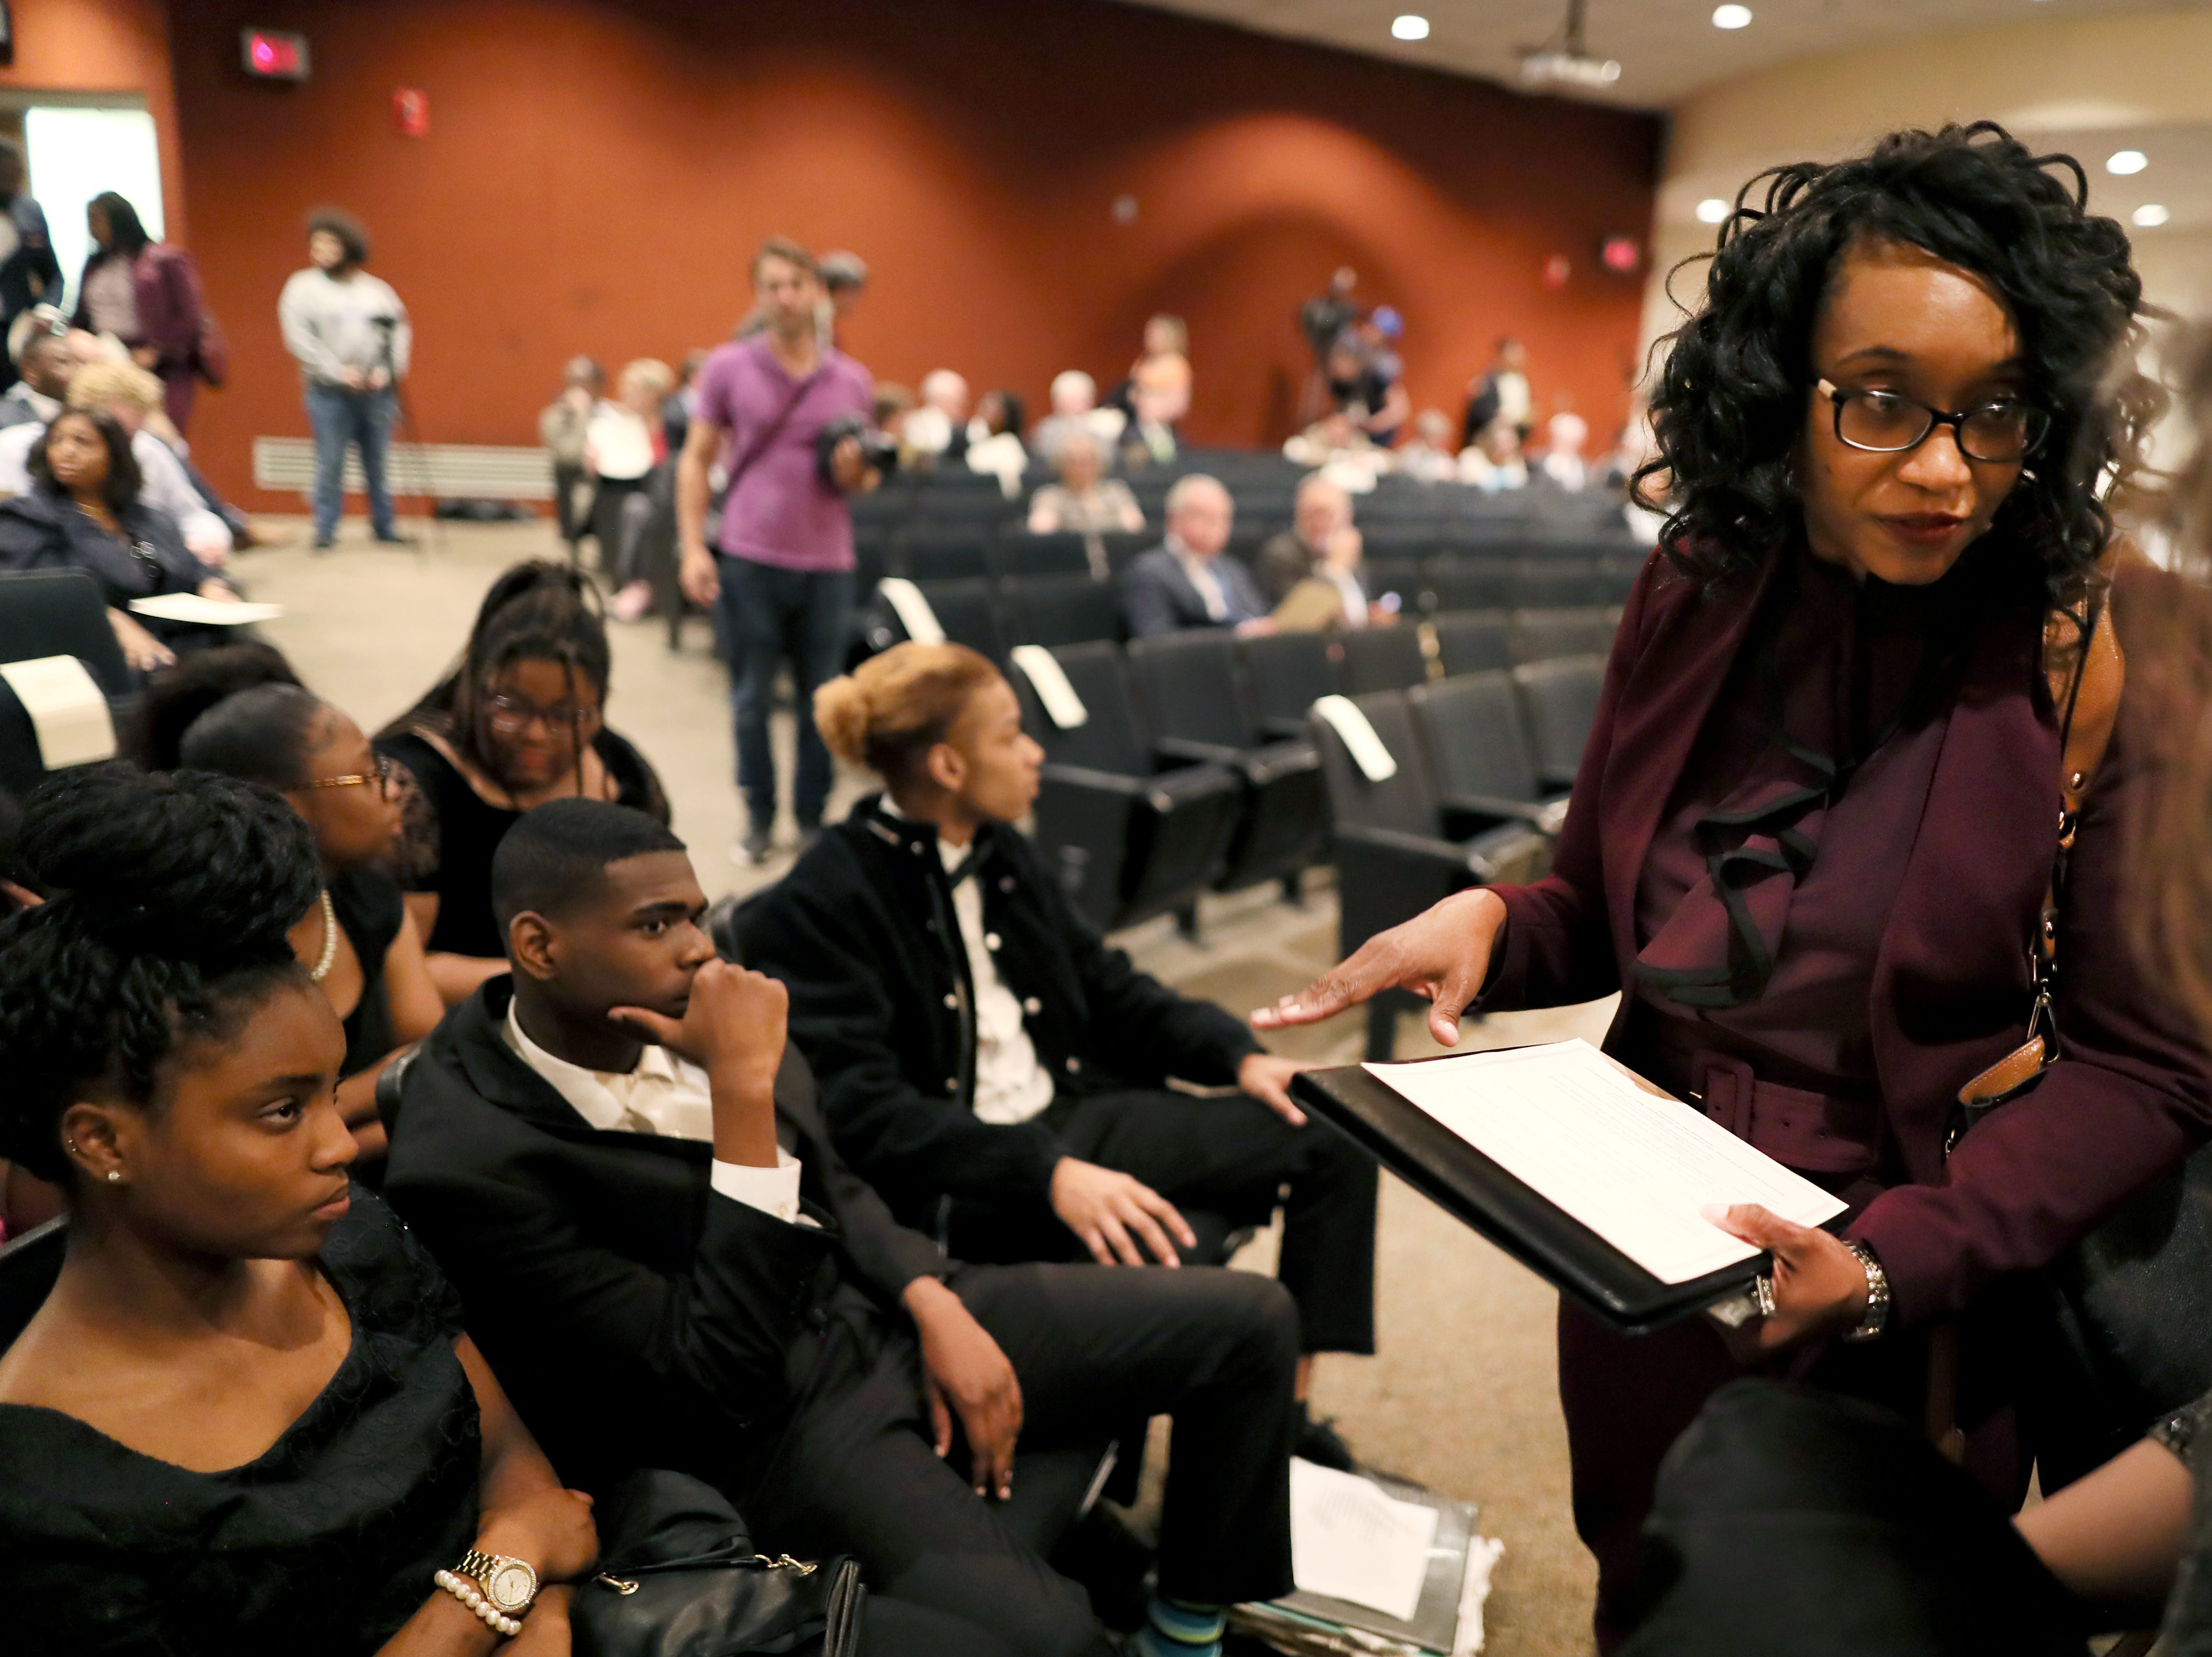 Phyllis Aluko speaks to the Whitehaven High School Choir, from her alma mater, before being sworn in as Shelby County's first female chief public defender at the Walter L. Bailey, Jr. Criminal Justice Center on Tuesday, April 16, 2019.